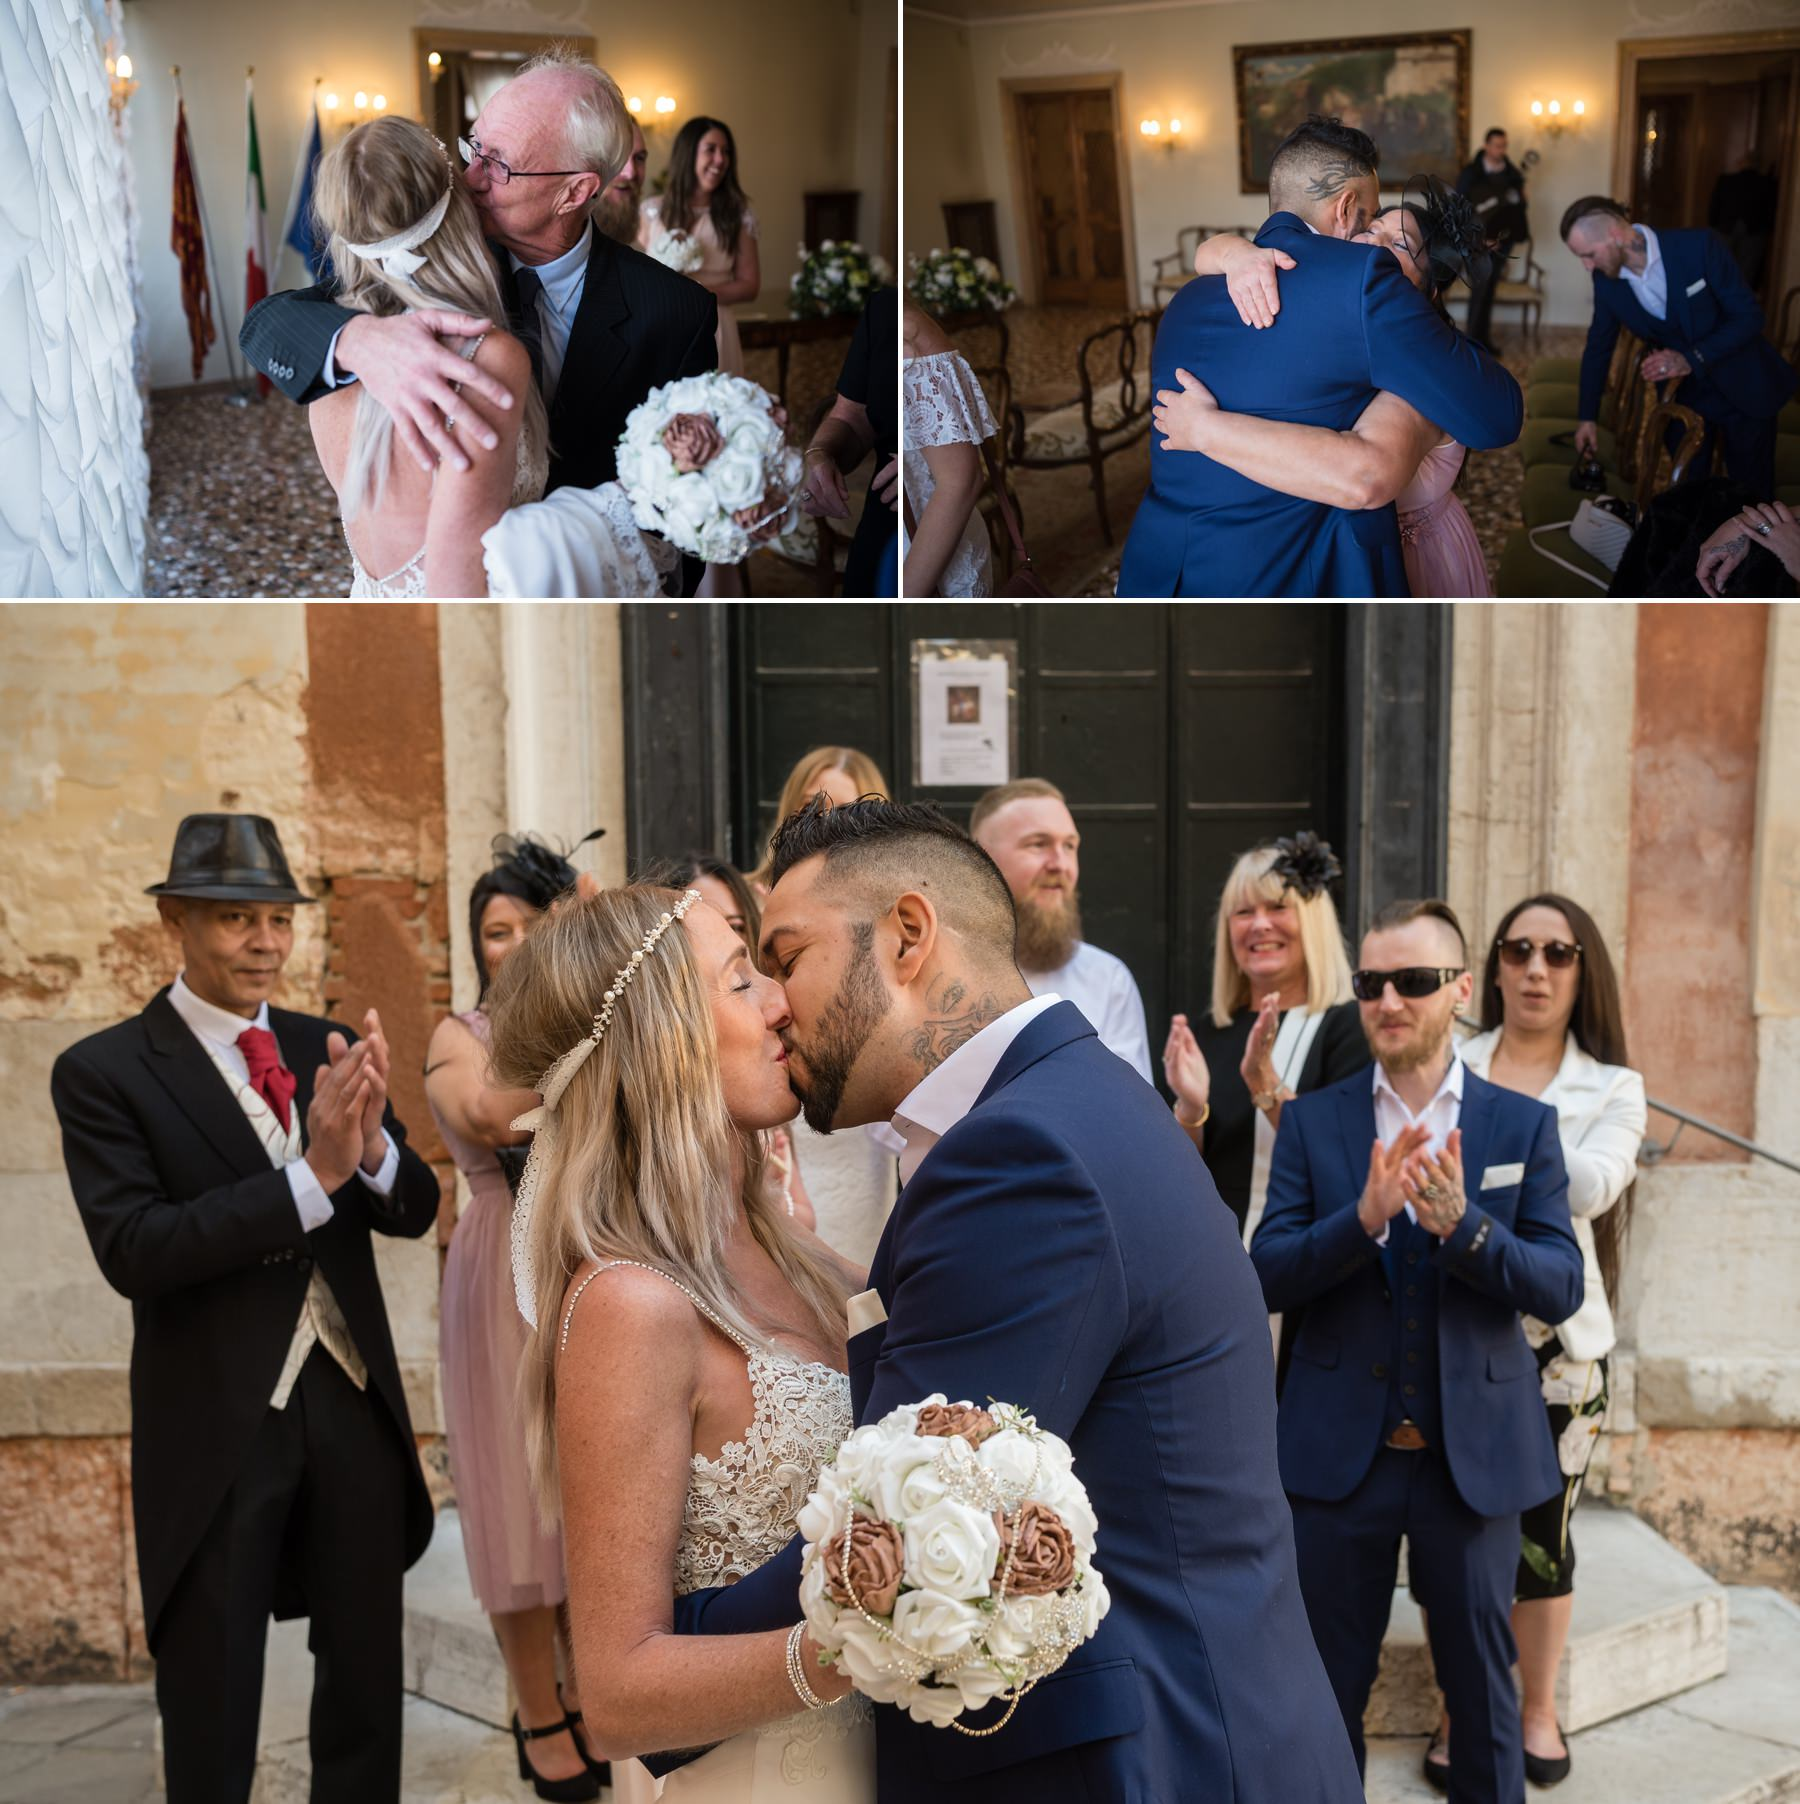 Palazzo Cavalli Venice bride groom with guest together